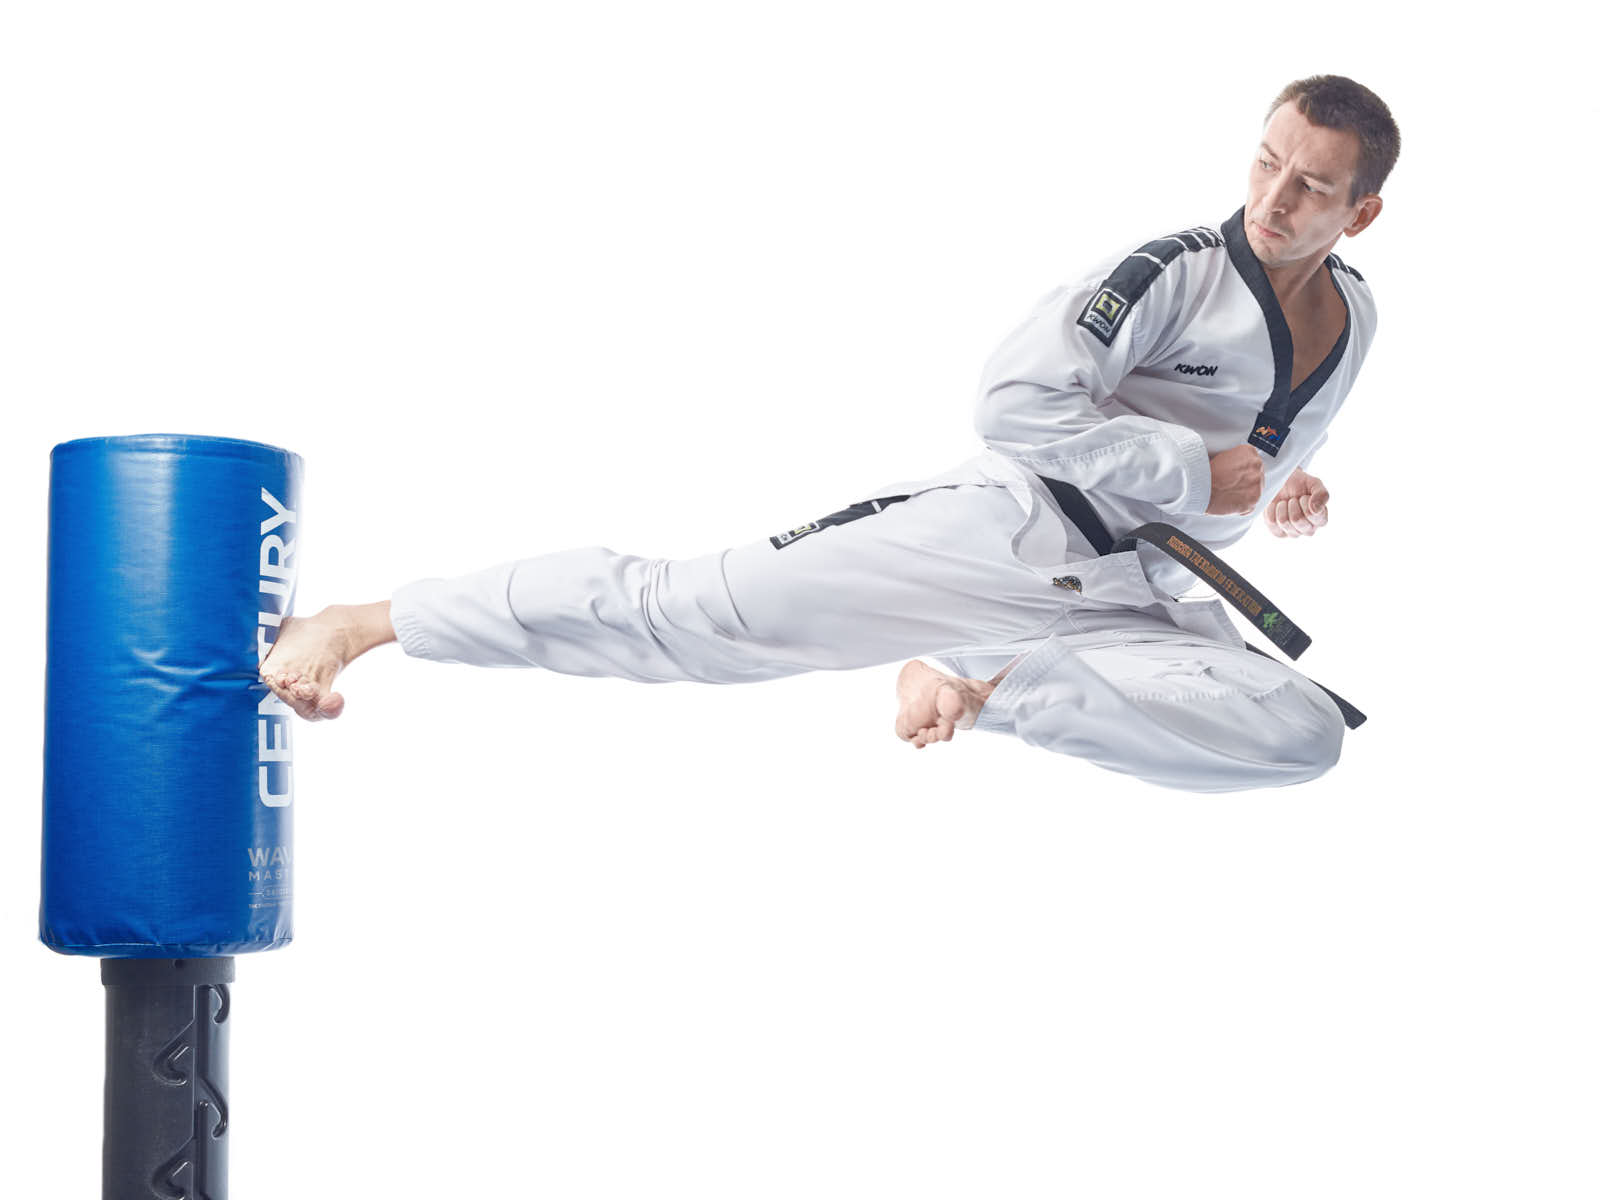 Instructor Andrey - Head Instructor of Tornado Taekwondo Club